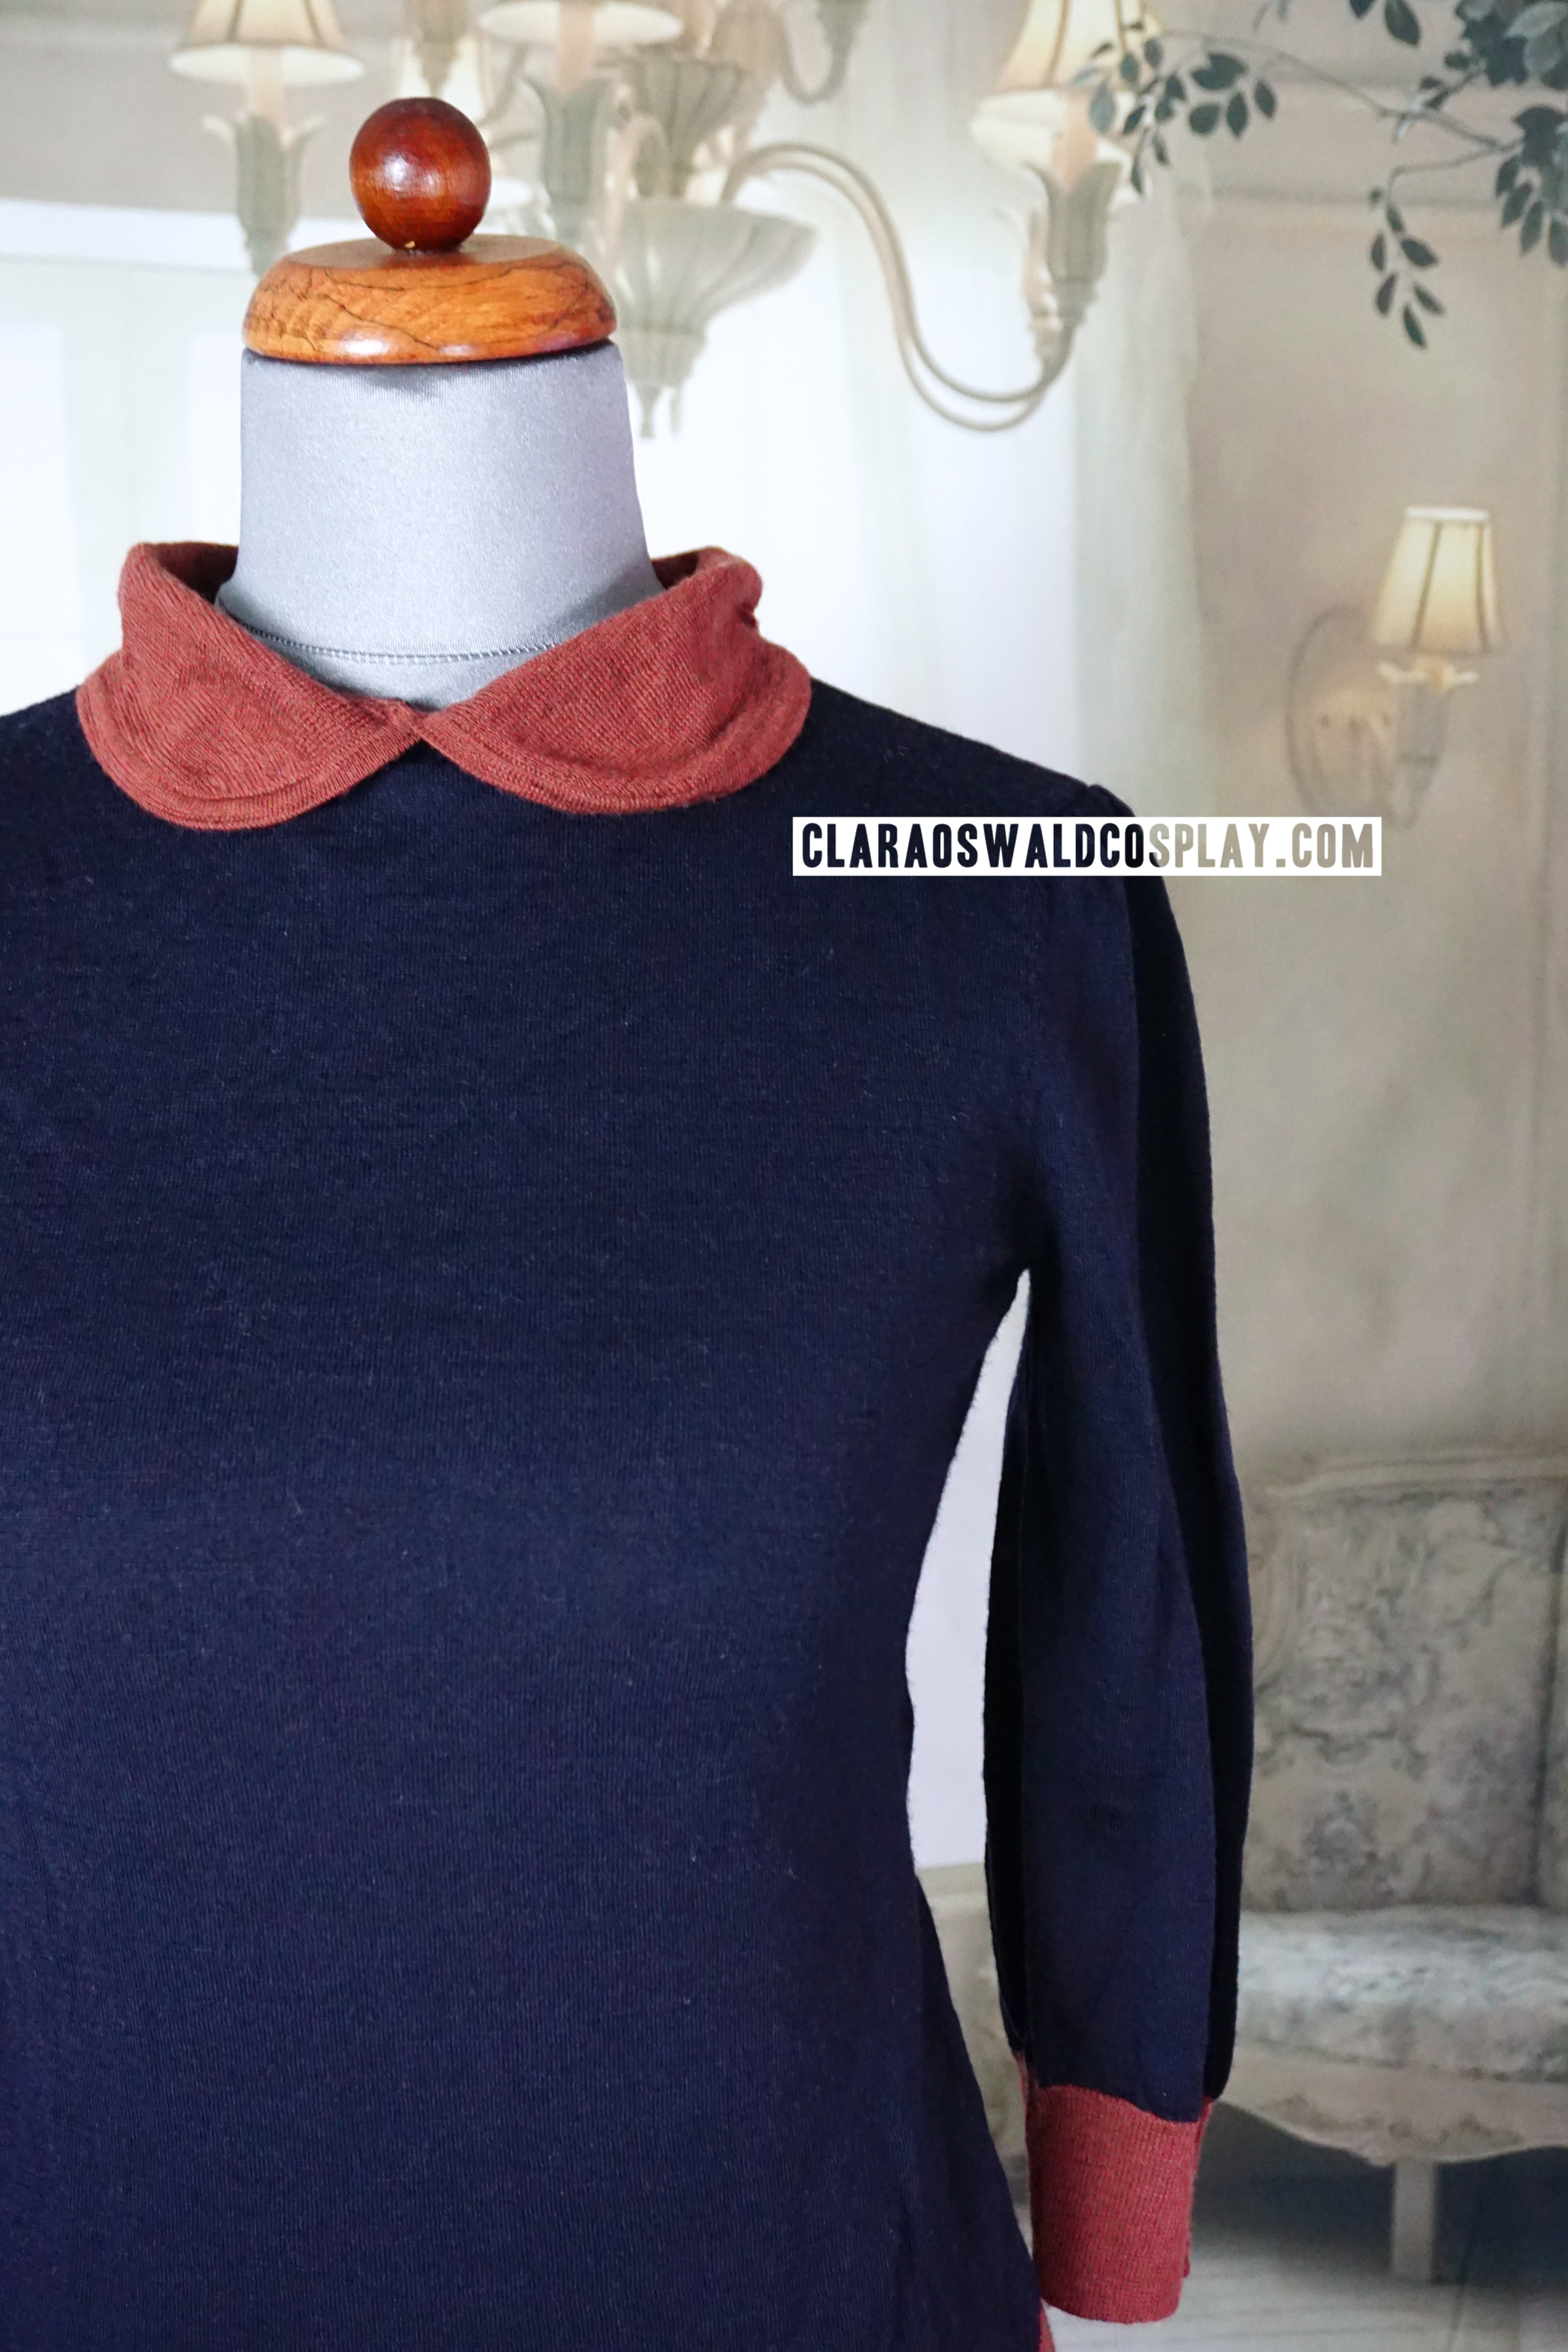 A closer look at the collar